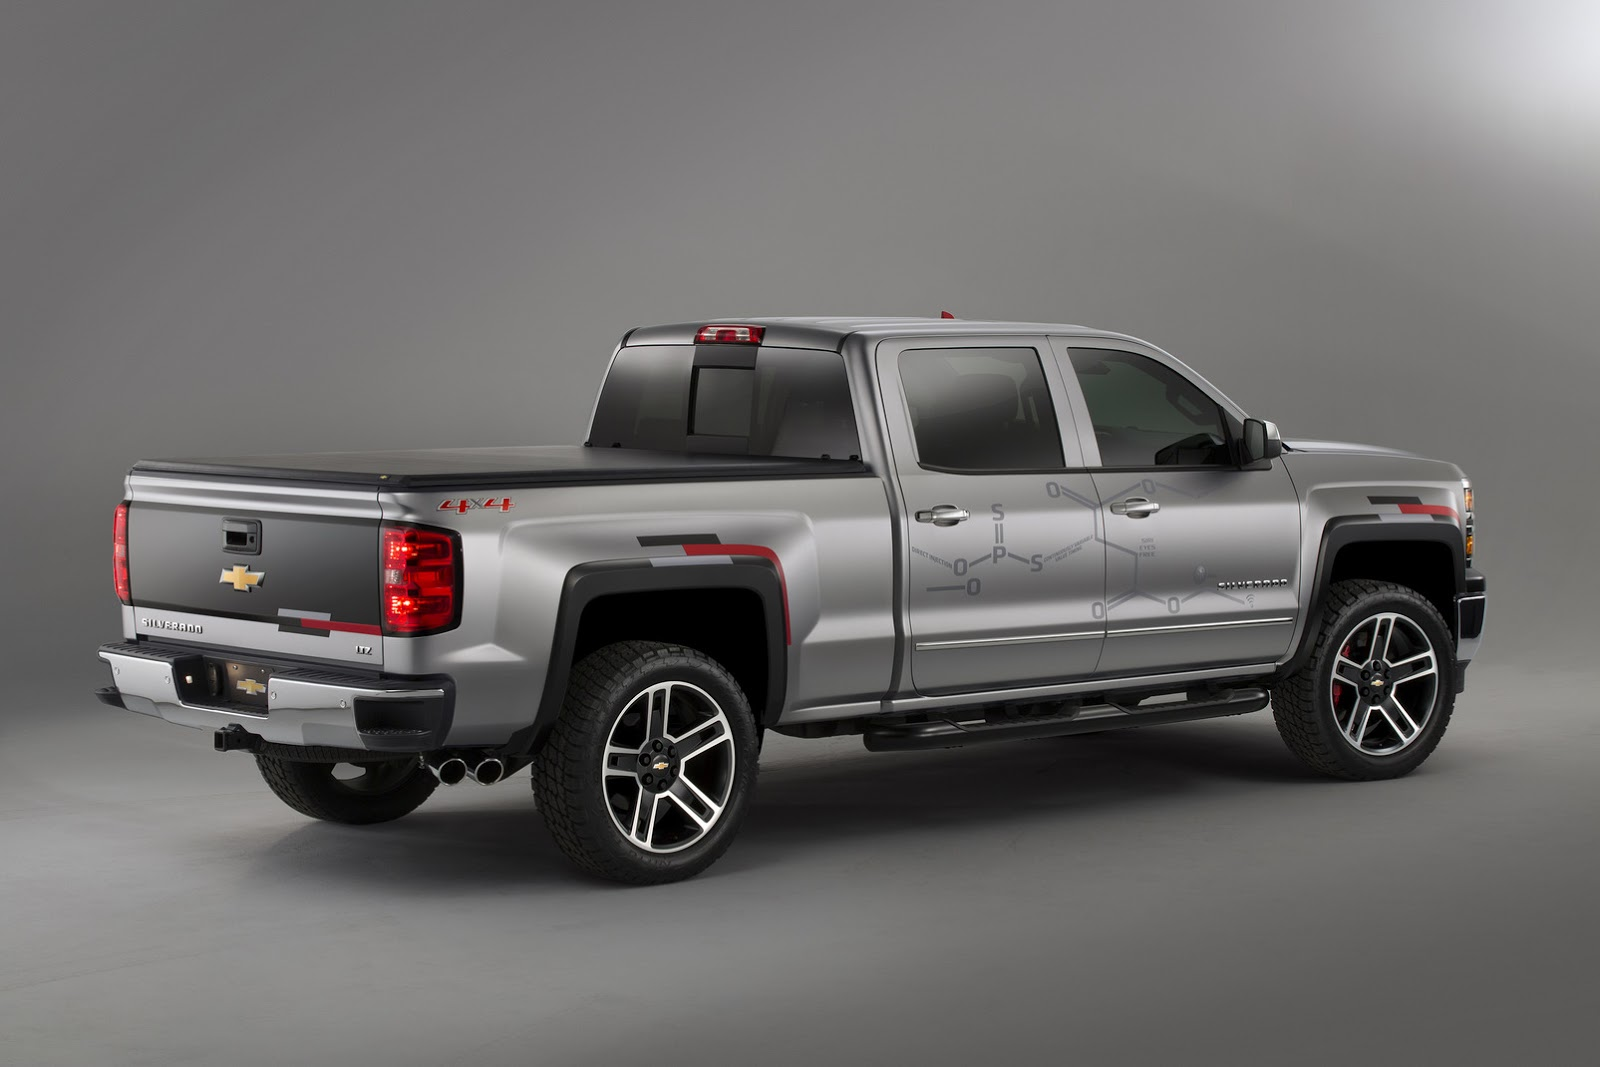 Chevy's Silverado Toughnology Concept Sounds Lame, Looks Good